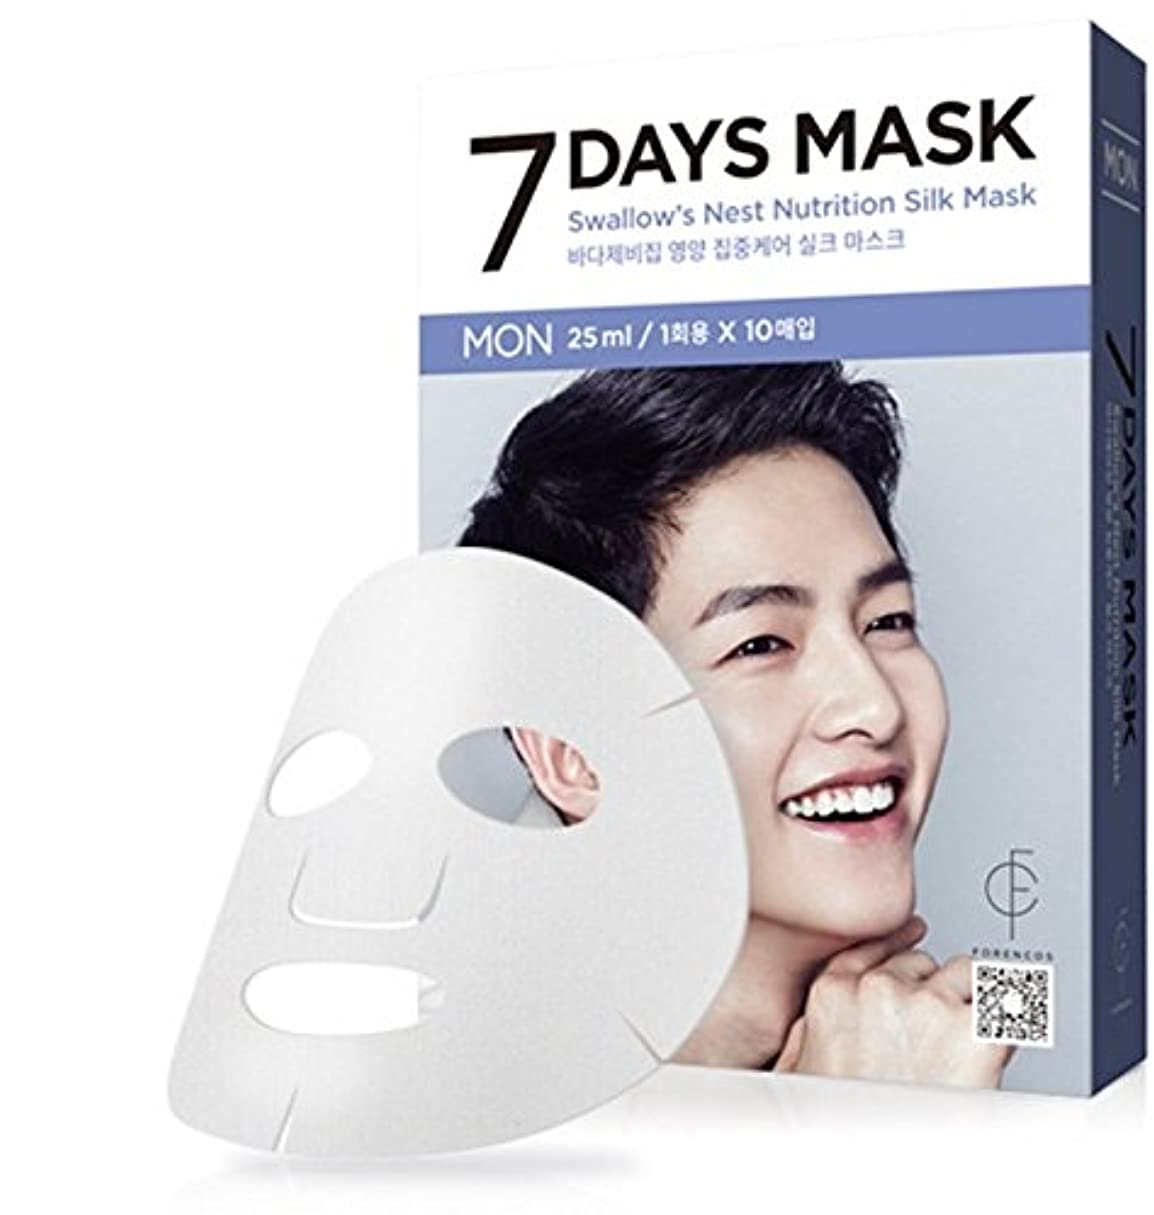 FORENCOS 7 Days Mask 10pcs (#Monday : Swallow's Nest Nutrition Silk Mask)/フォレンコス セブンデイズ マスク 10枚 (#月曜日 : ツバメの巣...